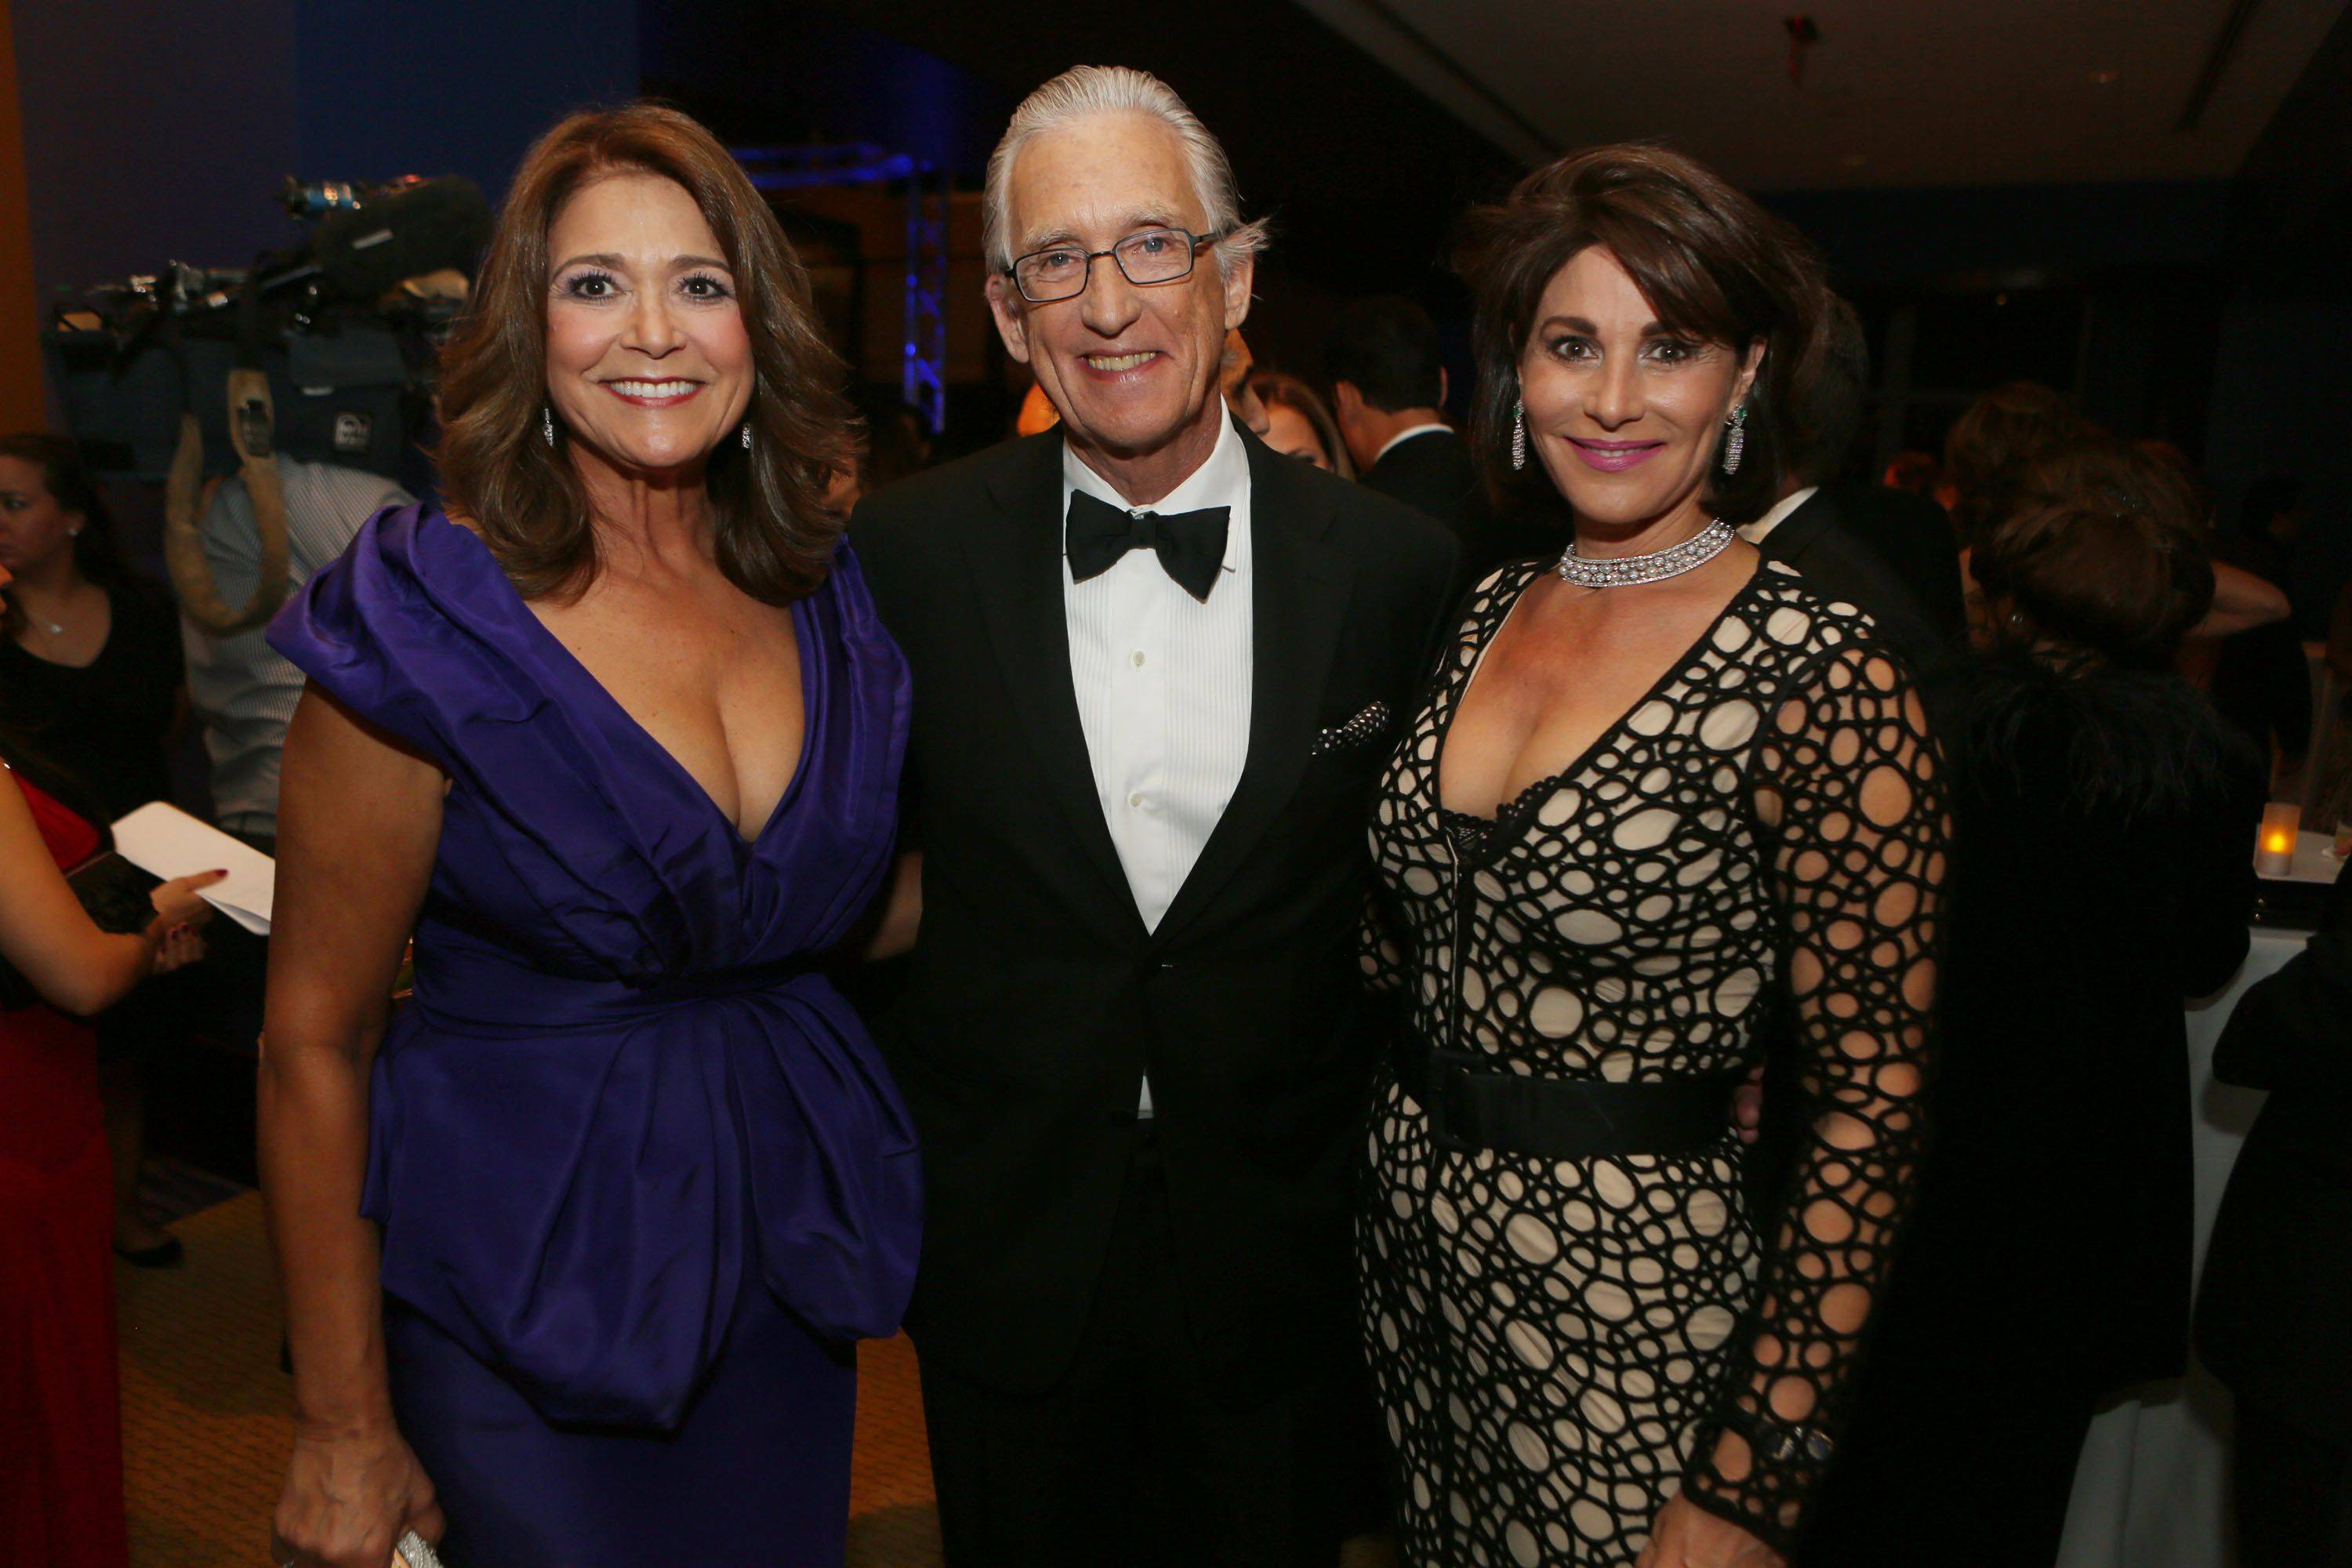 Maria Browne, Don Browne & Jennifer Valoppi